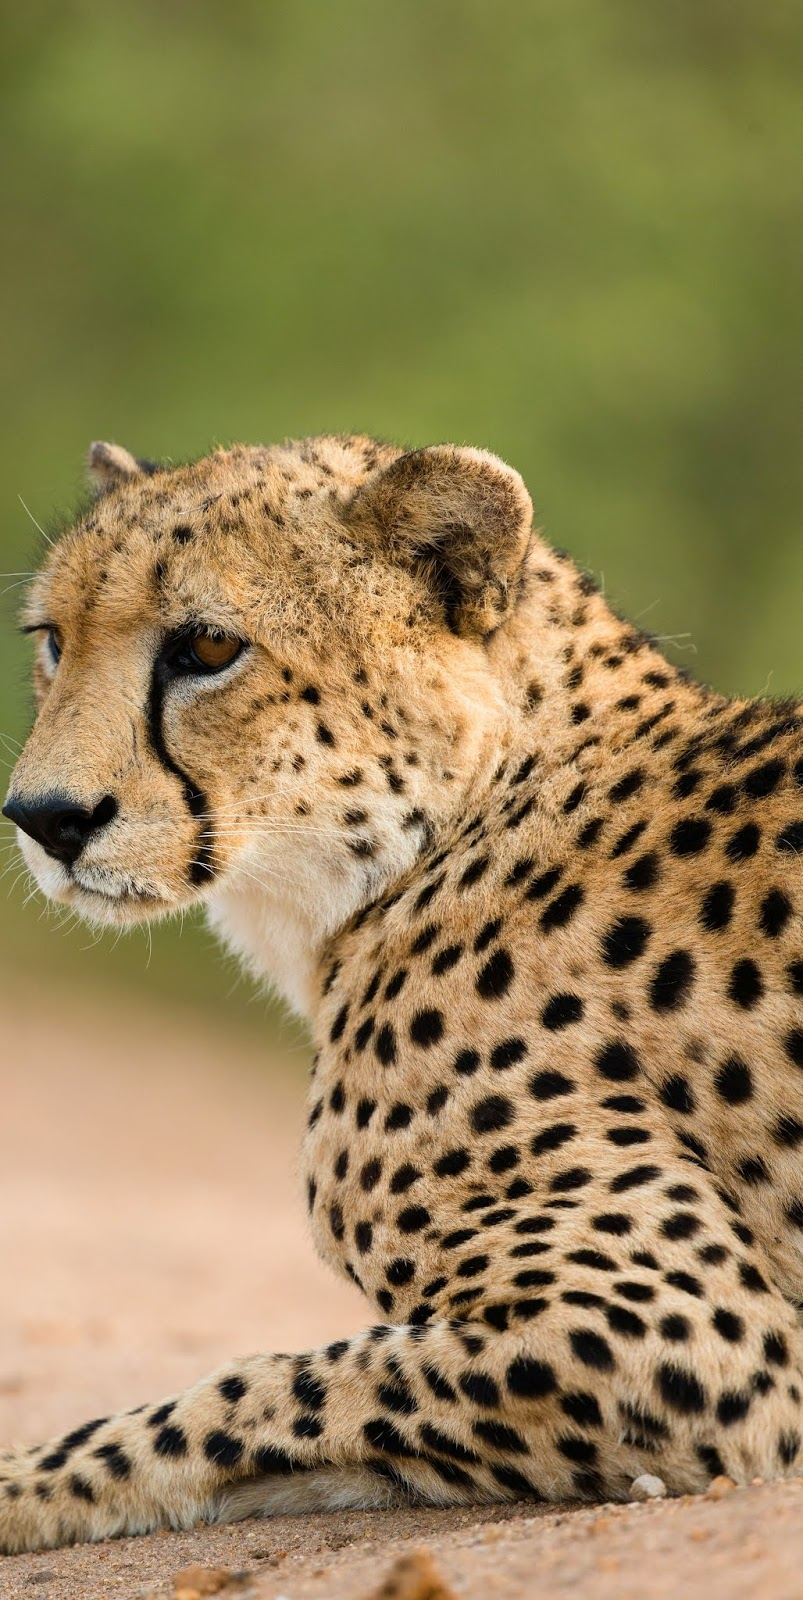 Picture of a cheetah resting.